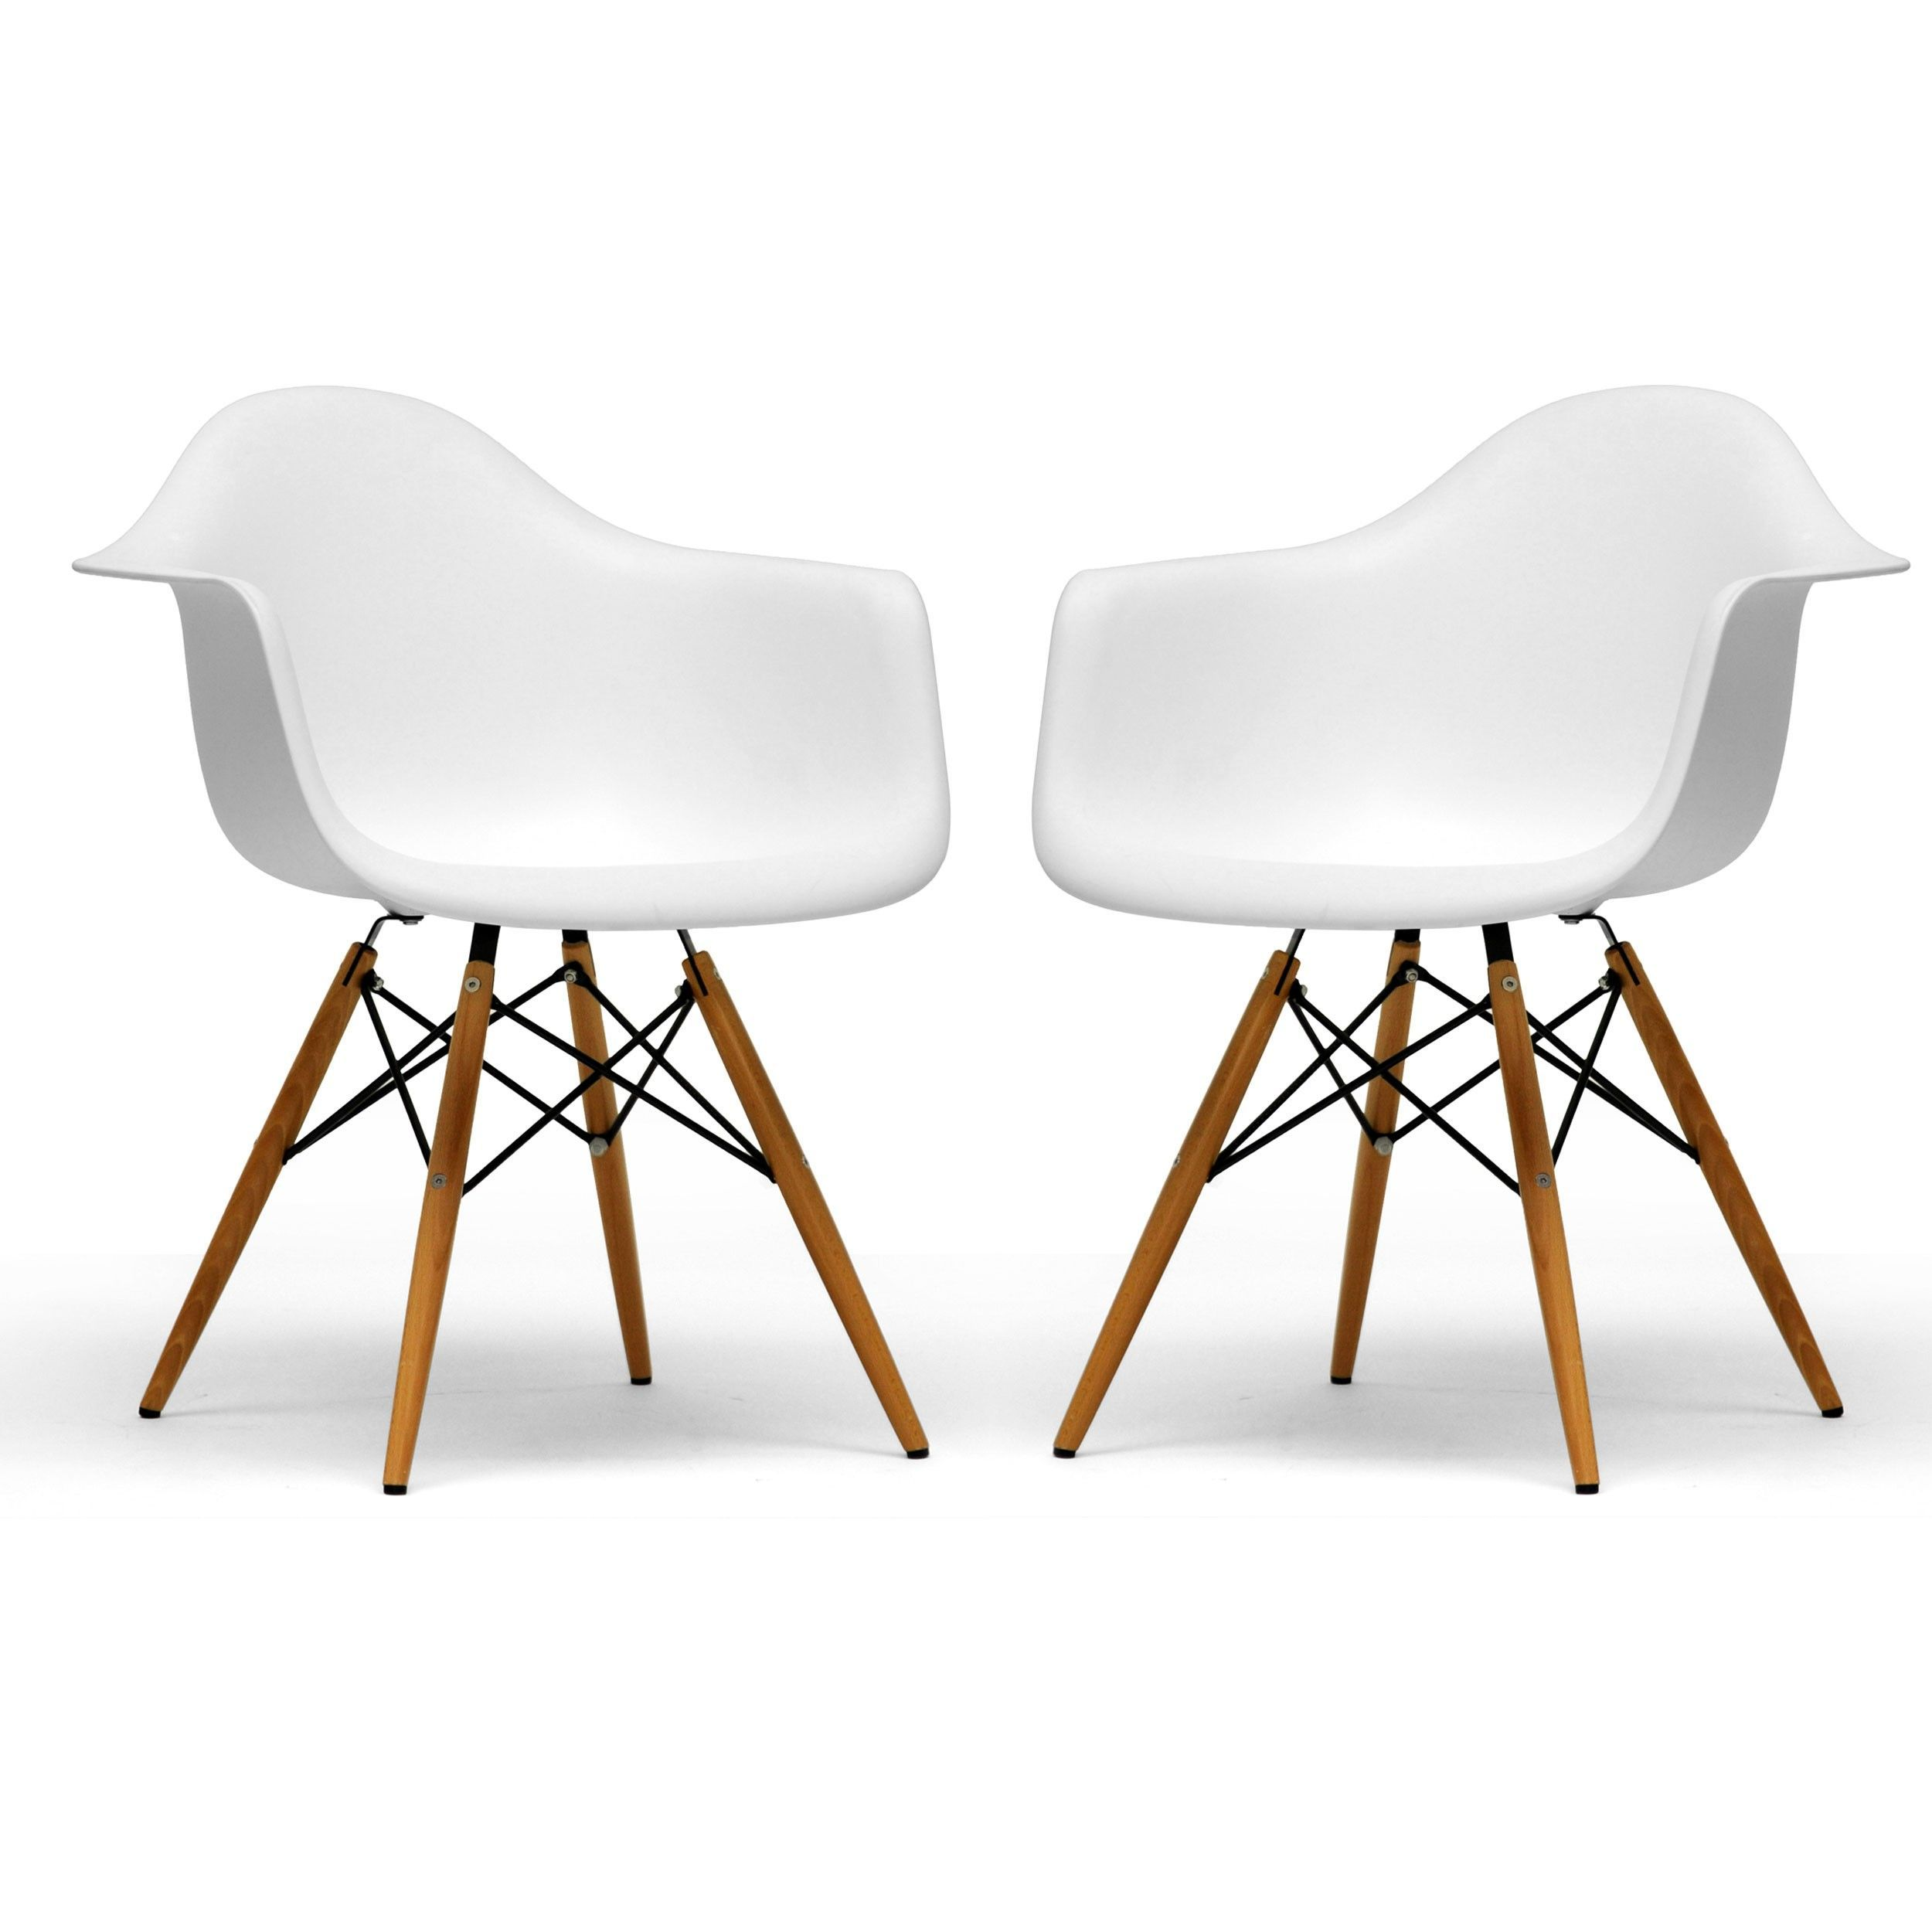 This set of two retro accent chairs will add a classic look to any